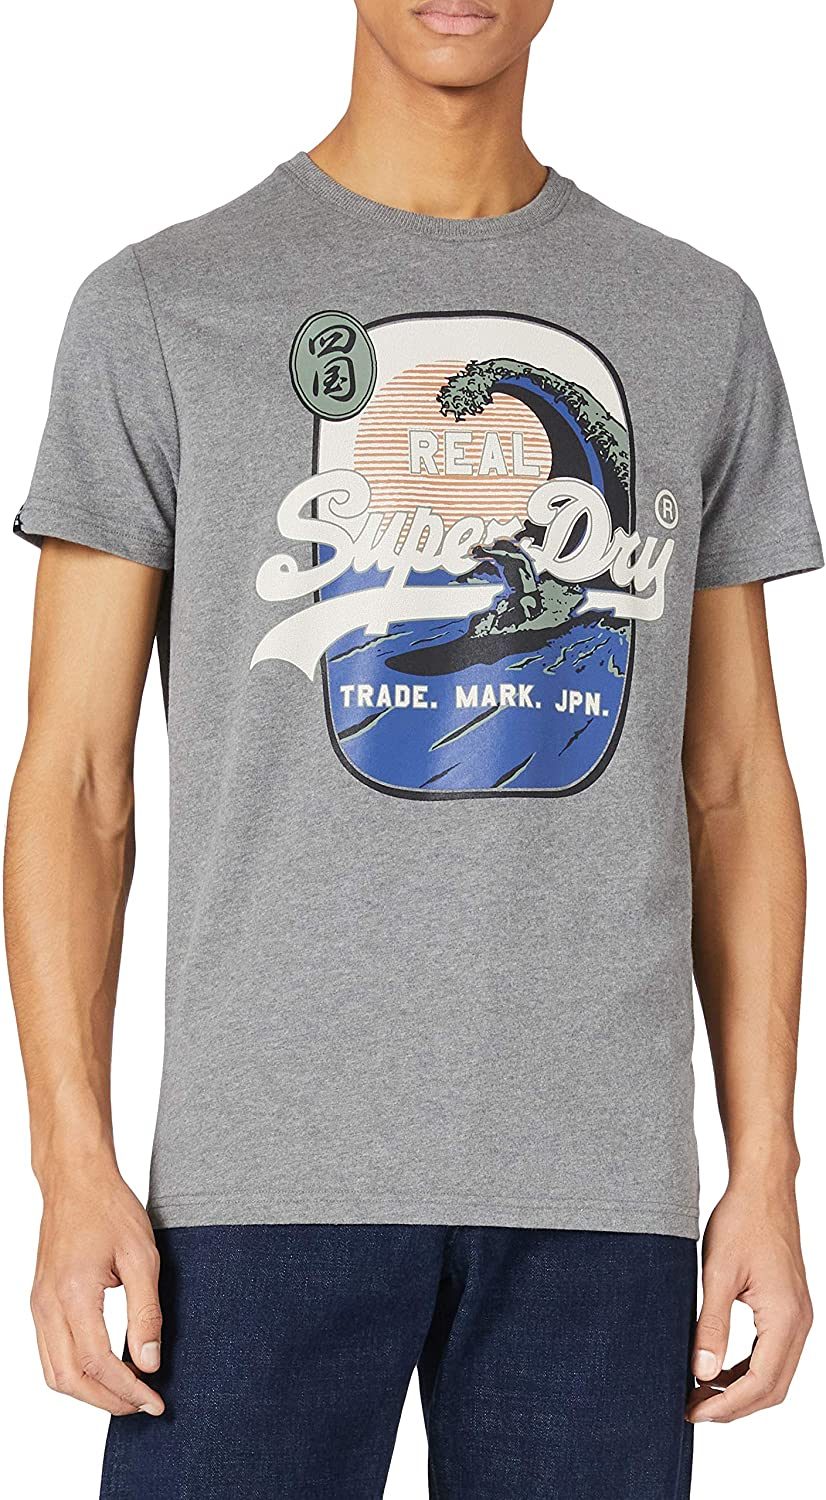 Miami Mall Superdry Vintage Logo Itago Cheap mail order shopping Standard T-Shirt Weight